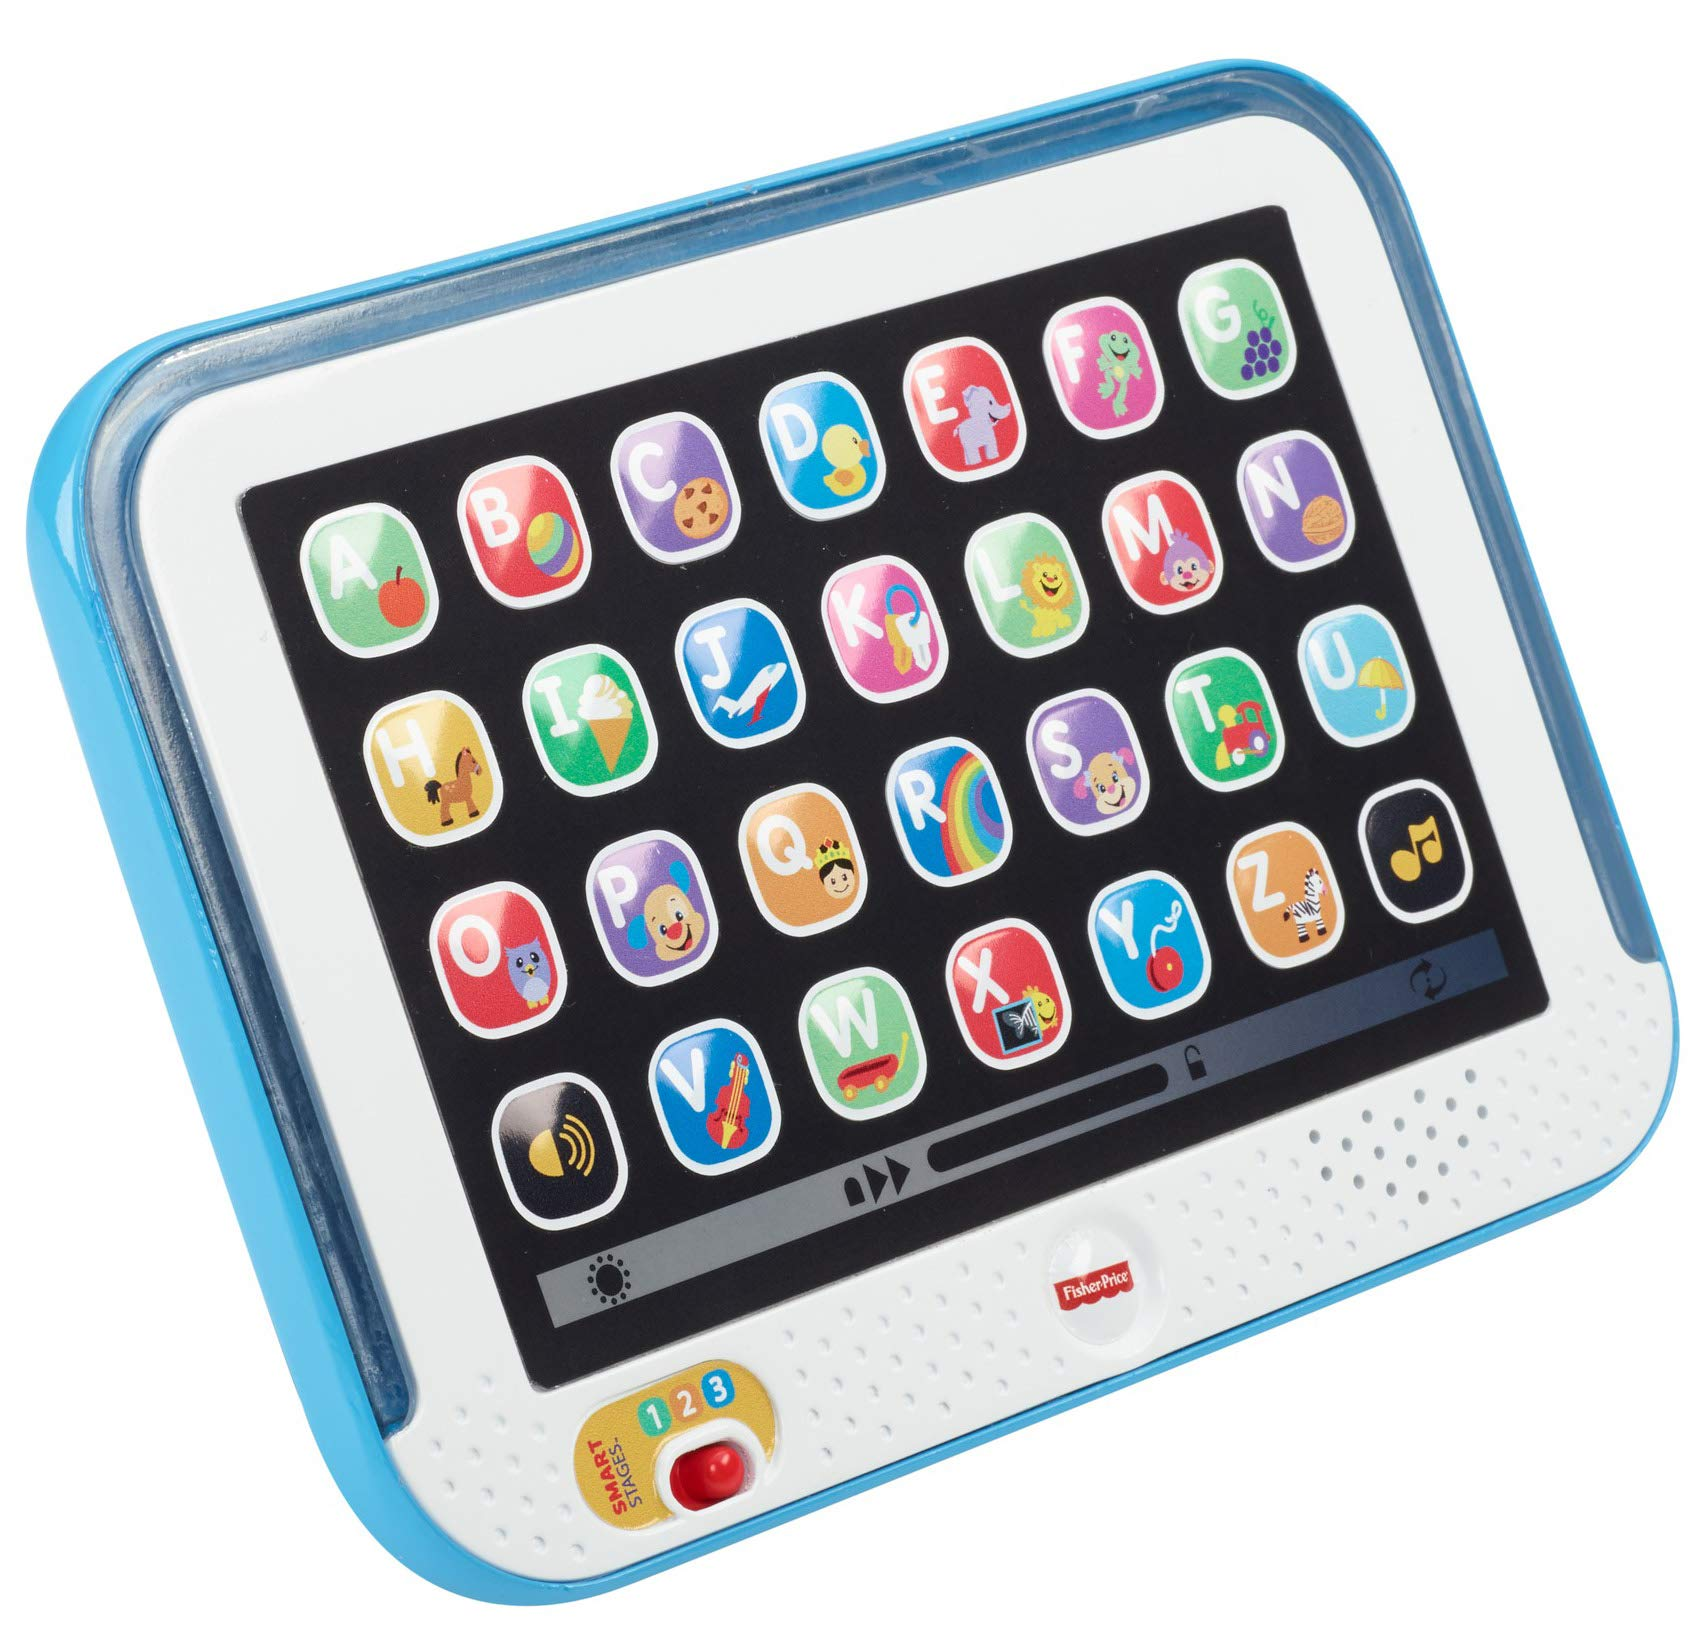 Fisher-Price Laugh & Learn Smart Stages Tablet, Blue by Fisher-Price (Image #4)